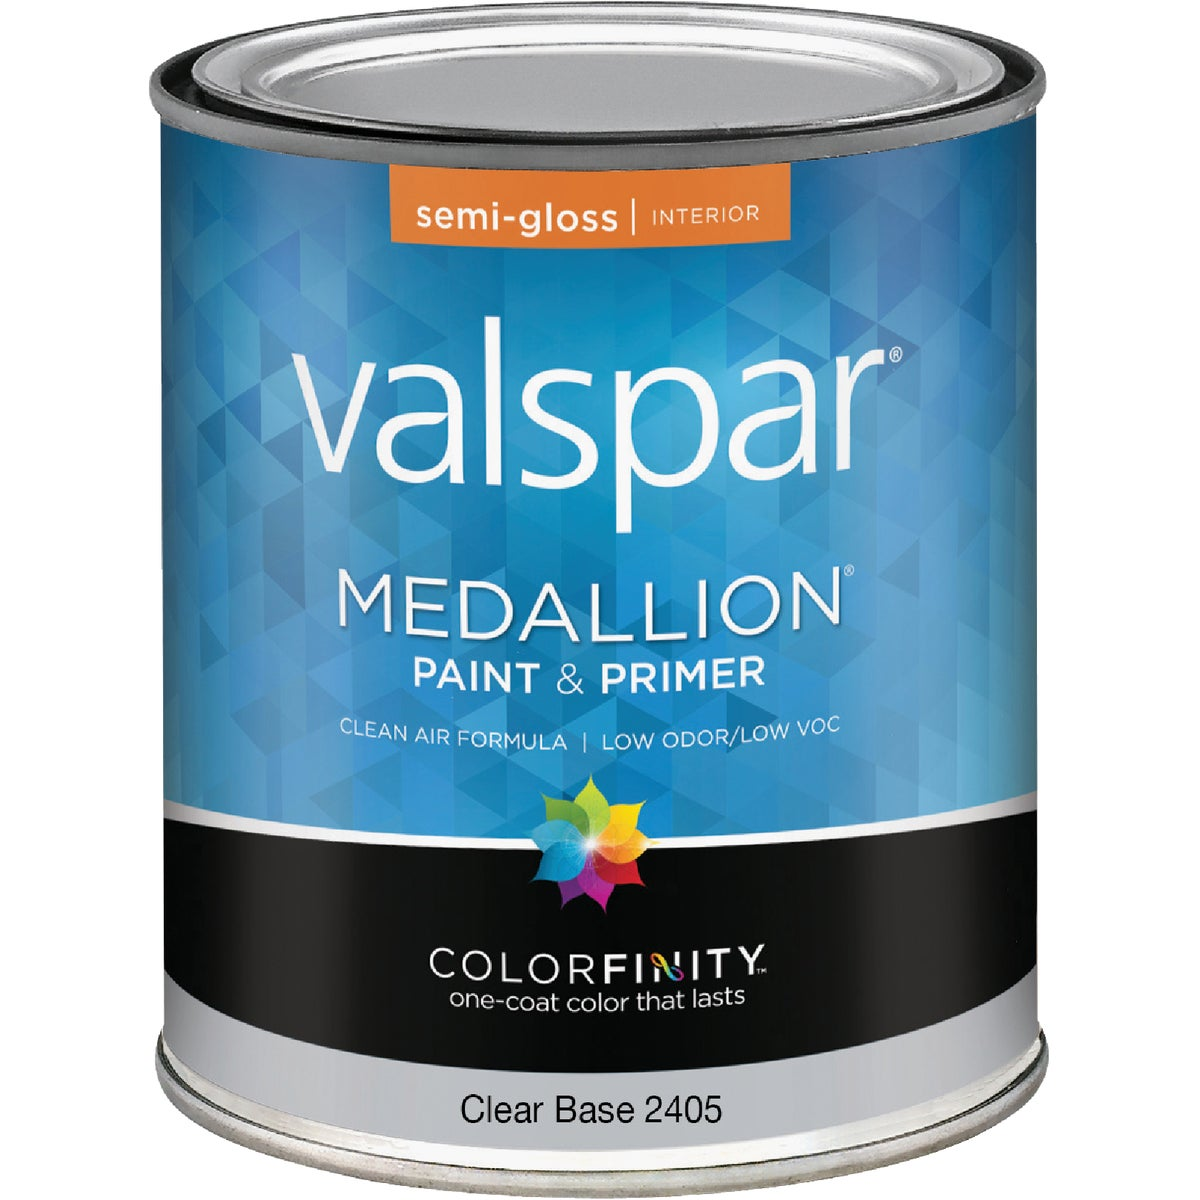 INT S/G CLEAR BS PAINT - 027.0002405.005 by Valspar Corp